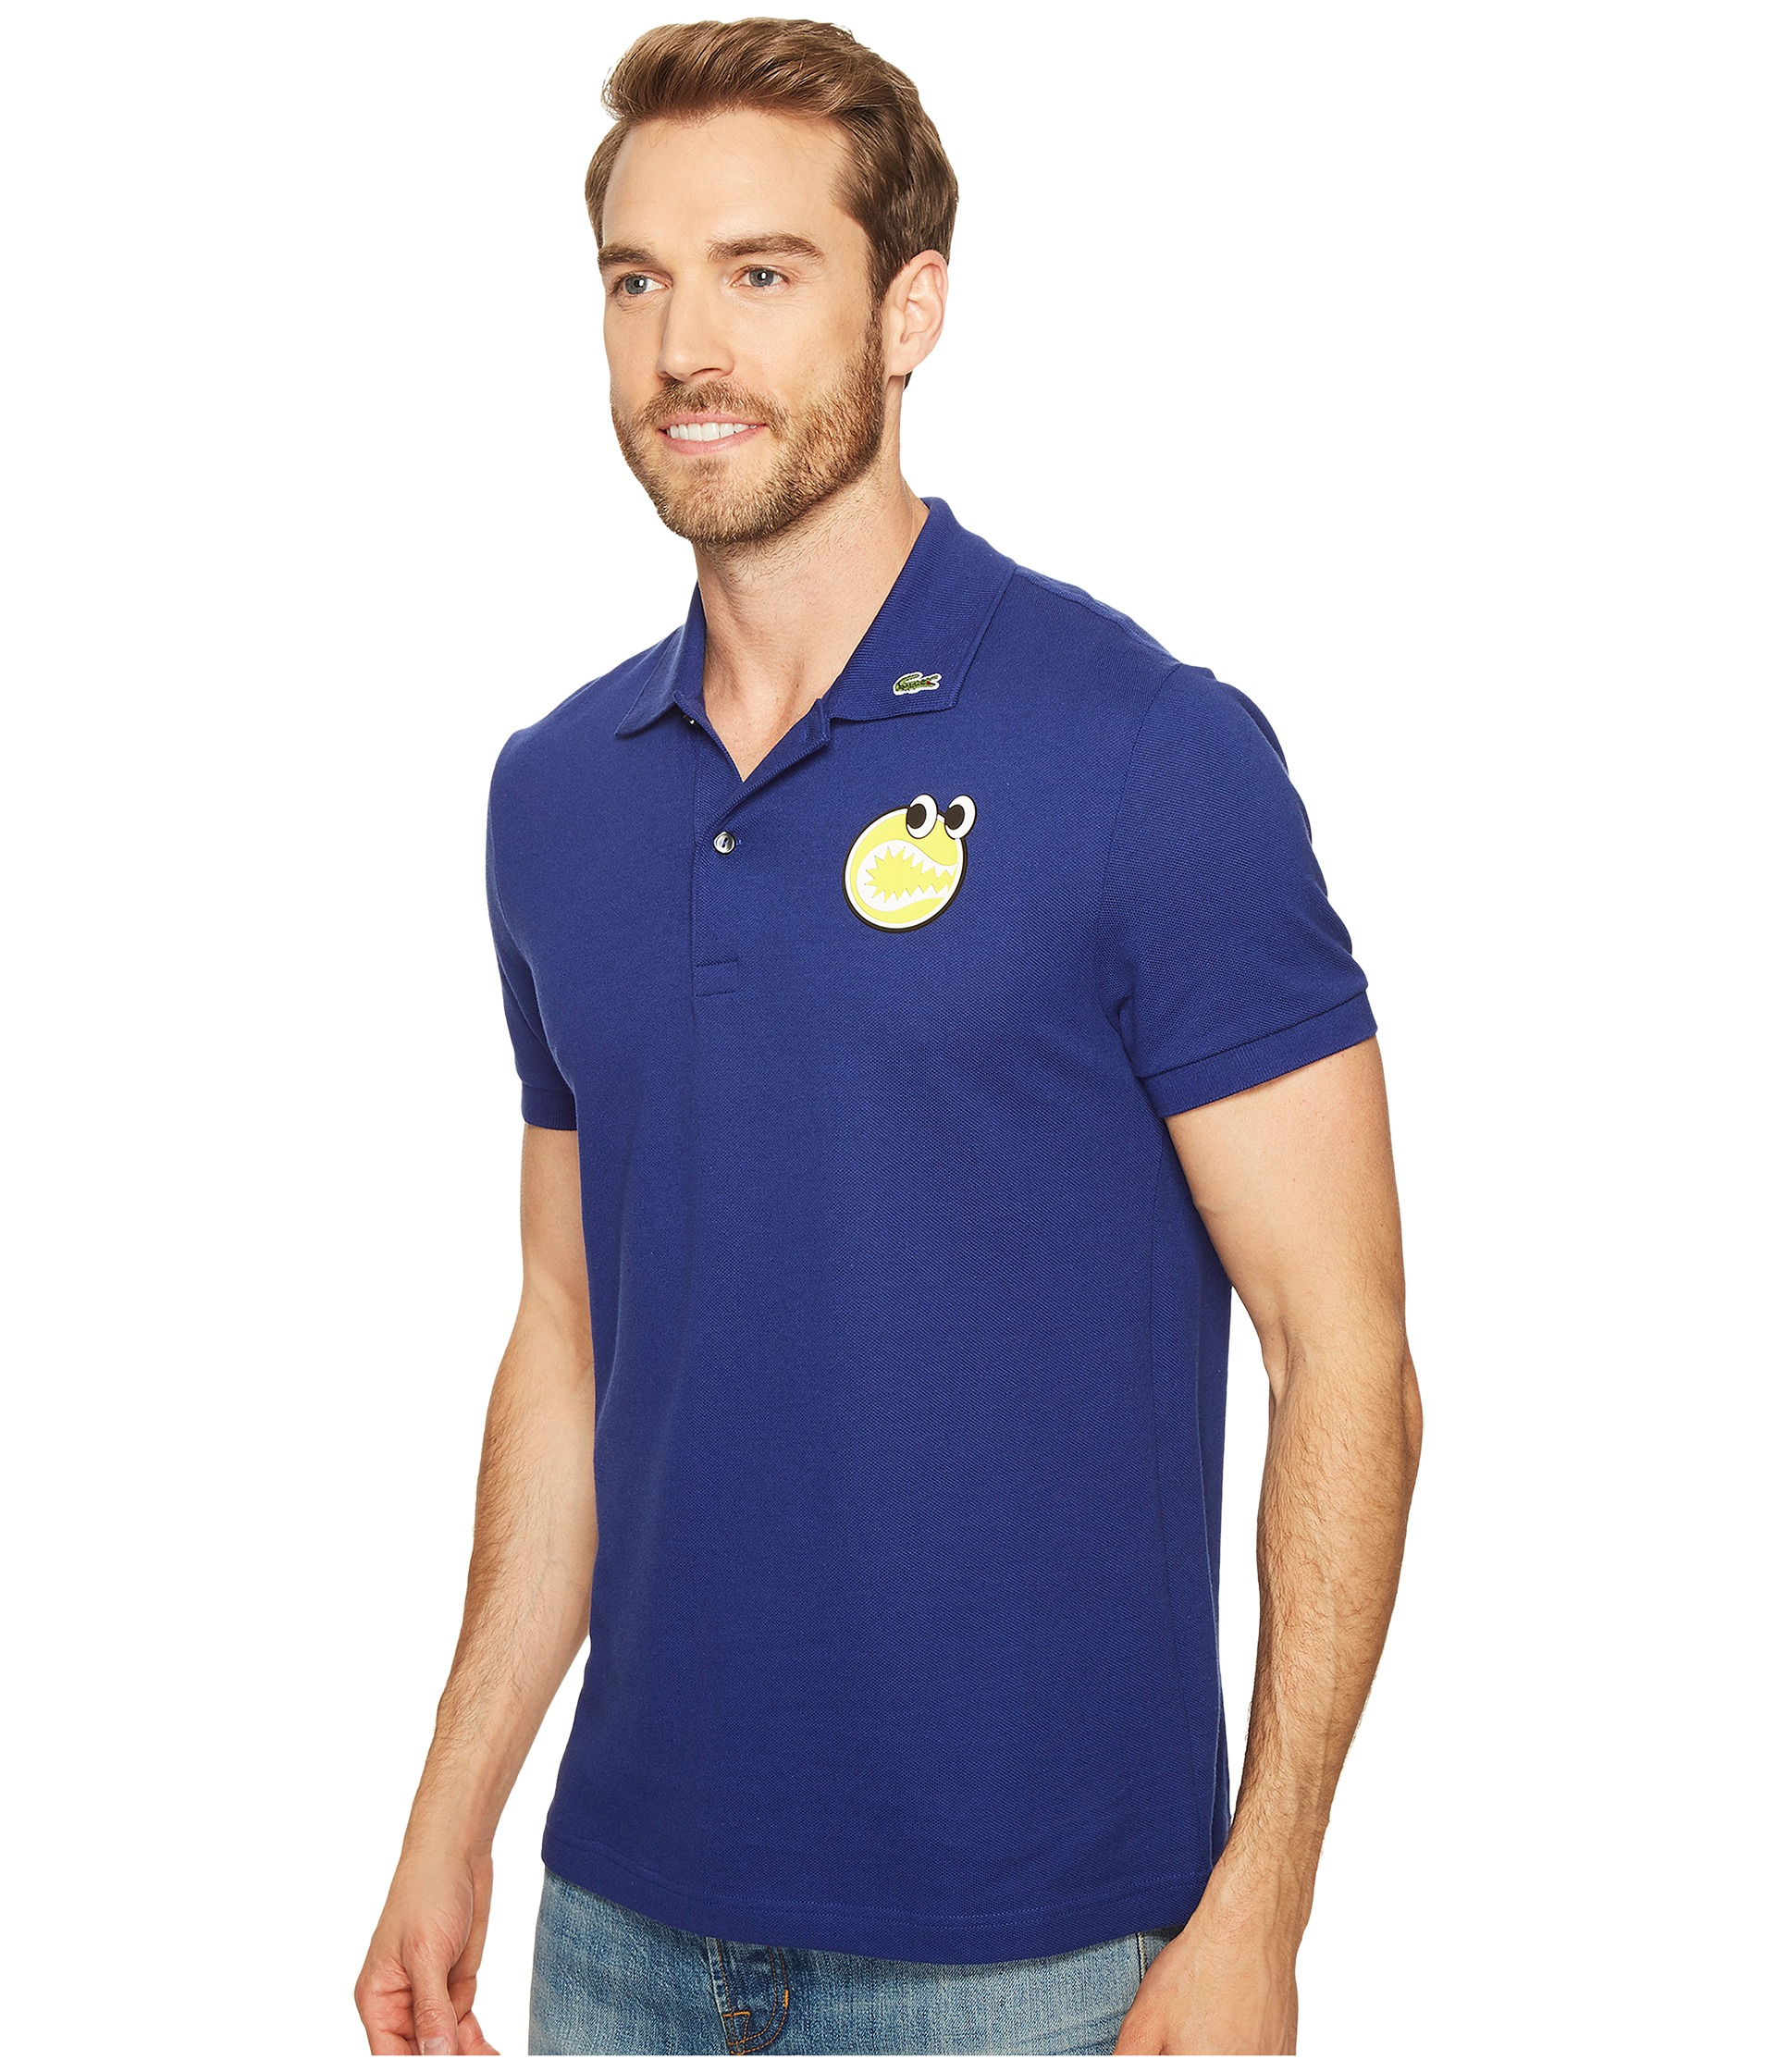 e0db0498 low-cost Lacoste Yazbukey Short Sleeve Pique with Googly Eyes Graphic at